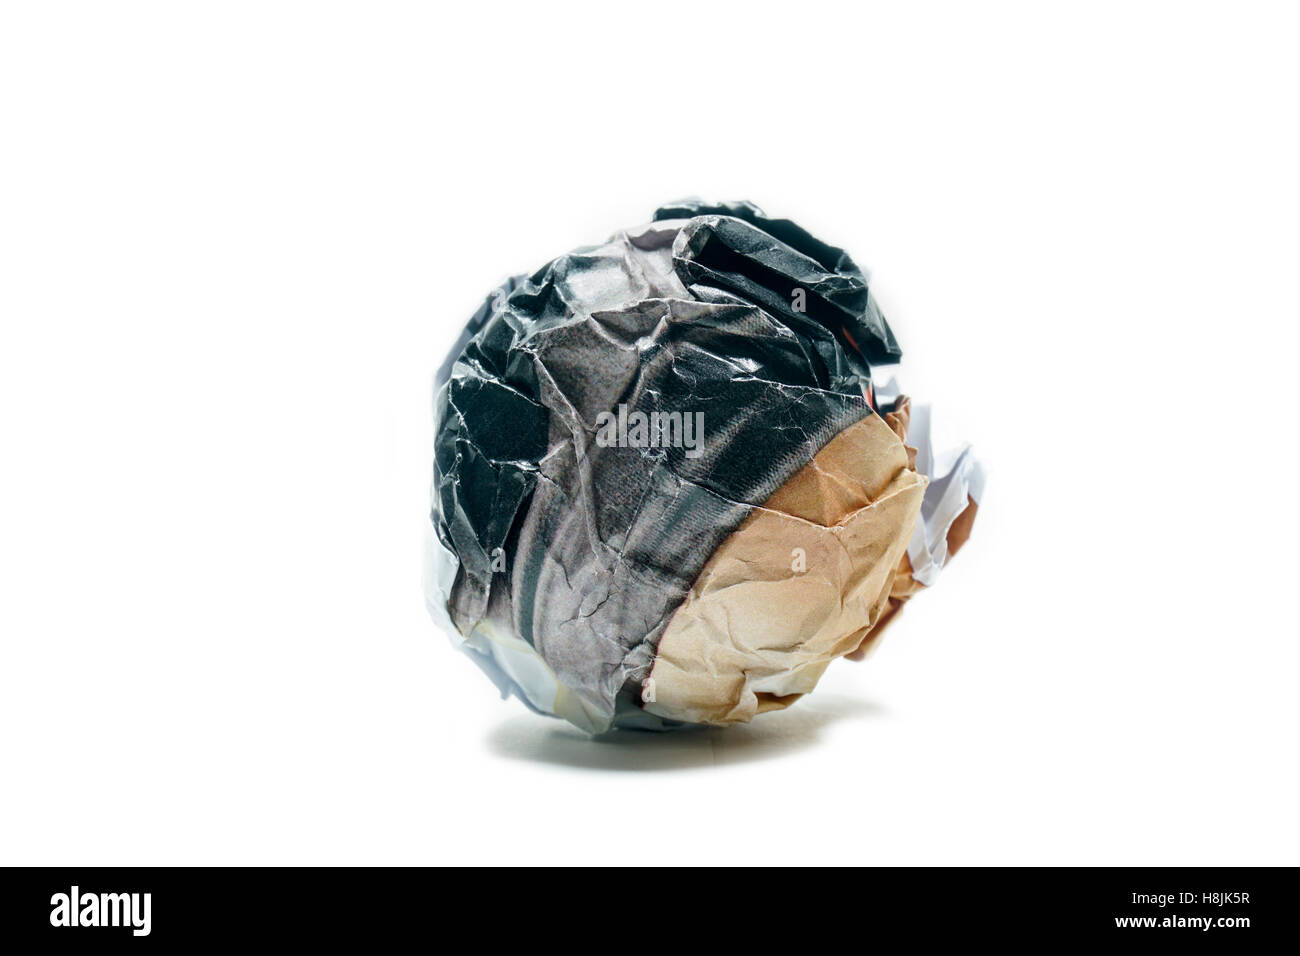 A screwed up piece of paper in ball shape., Crumpled sheet of paper isolated ., Junk paper can be recycle on white - Stock Image